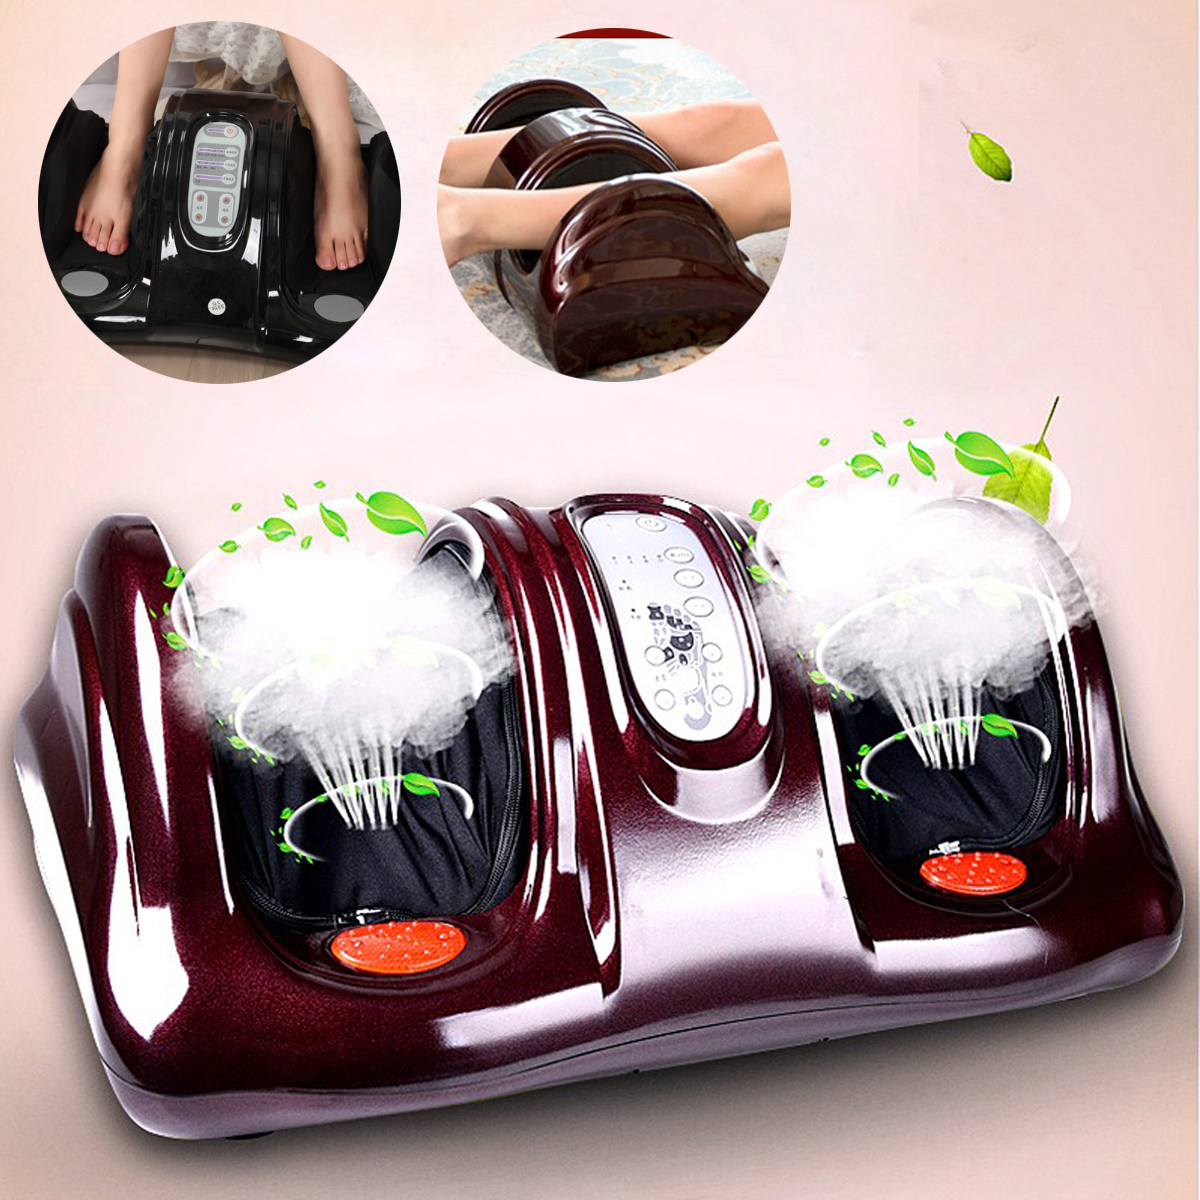 Heated Foot Ankle Calf Massager 3D Shiatsu Heating Kneading Rolling Reflexology Rolling Detachable Pads Convenient AutomaticHeated Foot Ankle Calf Massager 3D Shiatsu Heating Kneading Rolling Reflexology Rolling Detachable Pads Convenient Automatic